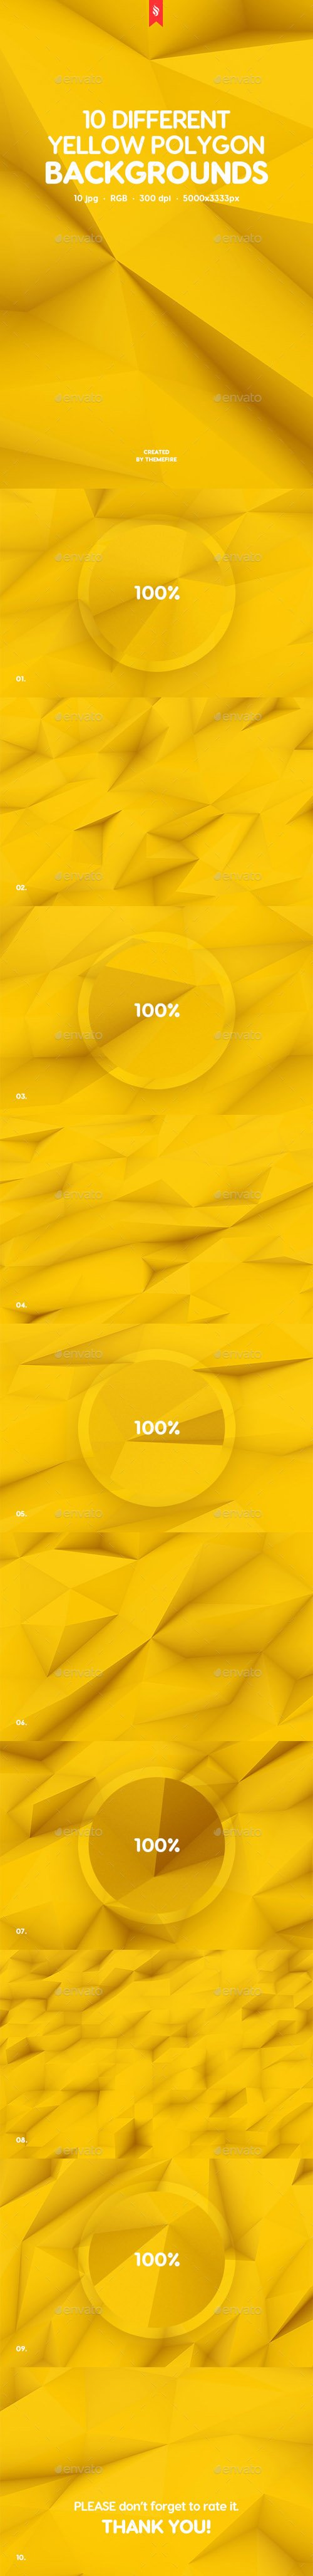 10 Different Yellow Polygon Backgrounds 20364620